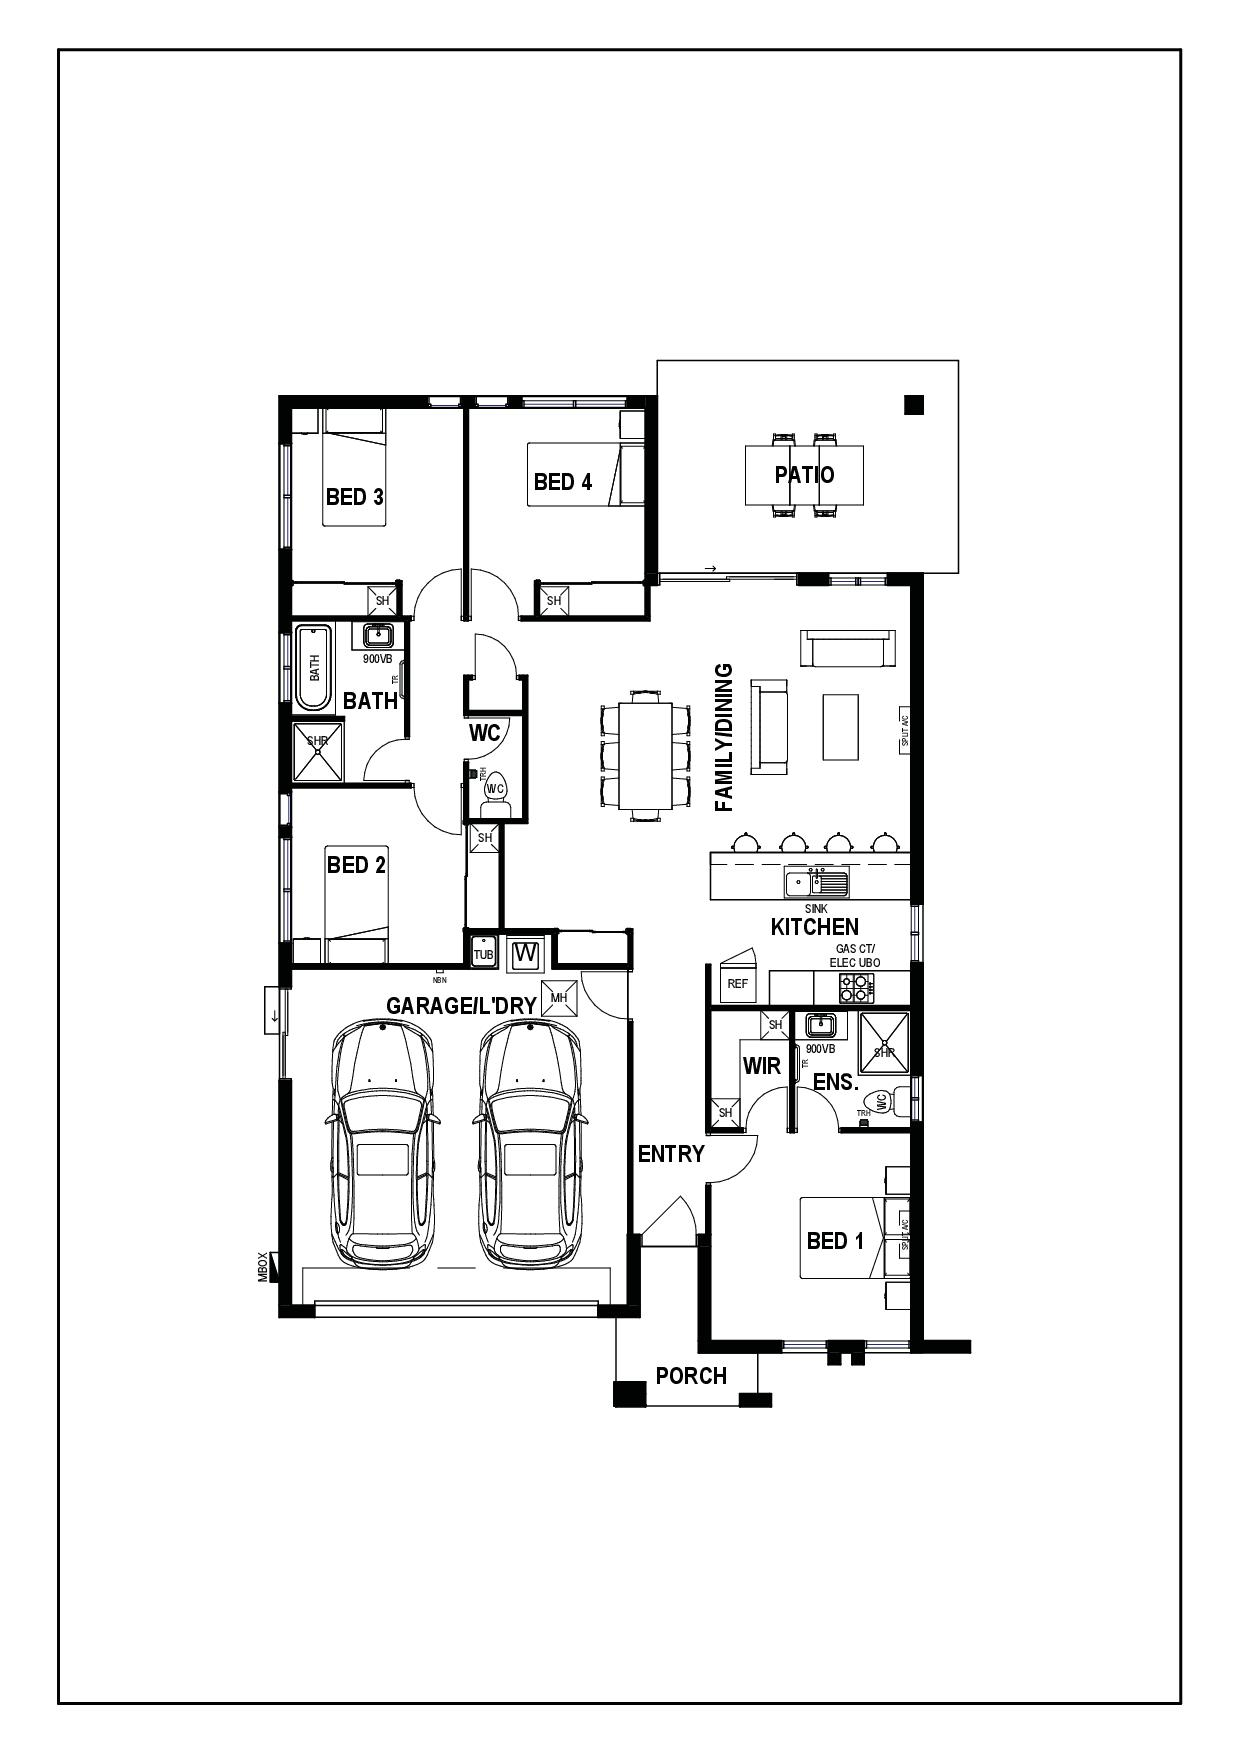 FLINDERS 177 C - Floor Plan.jpg